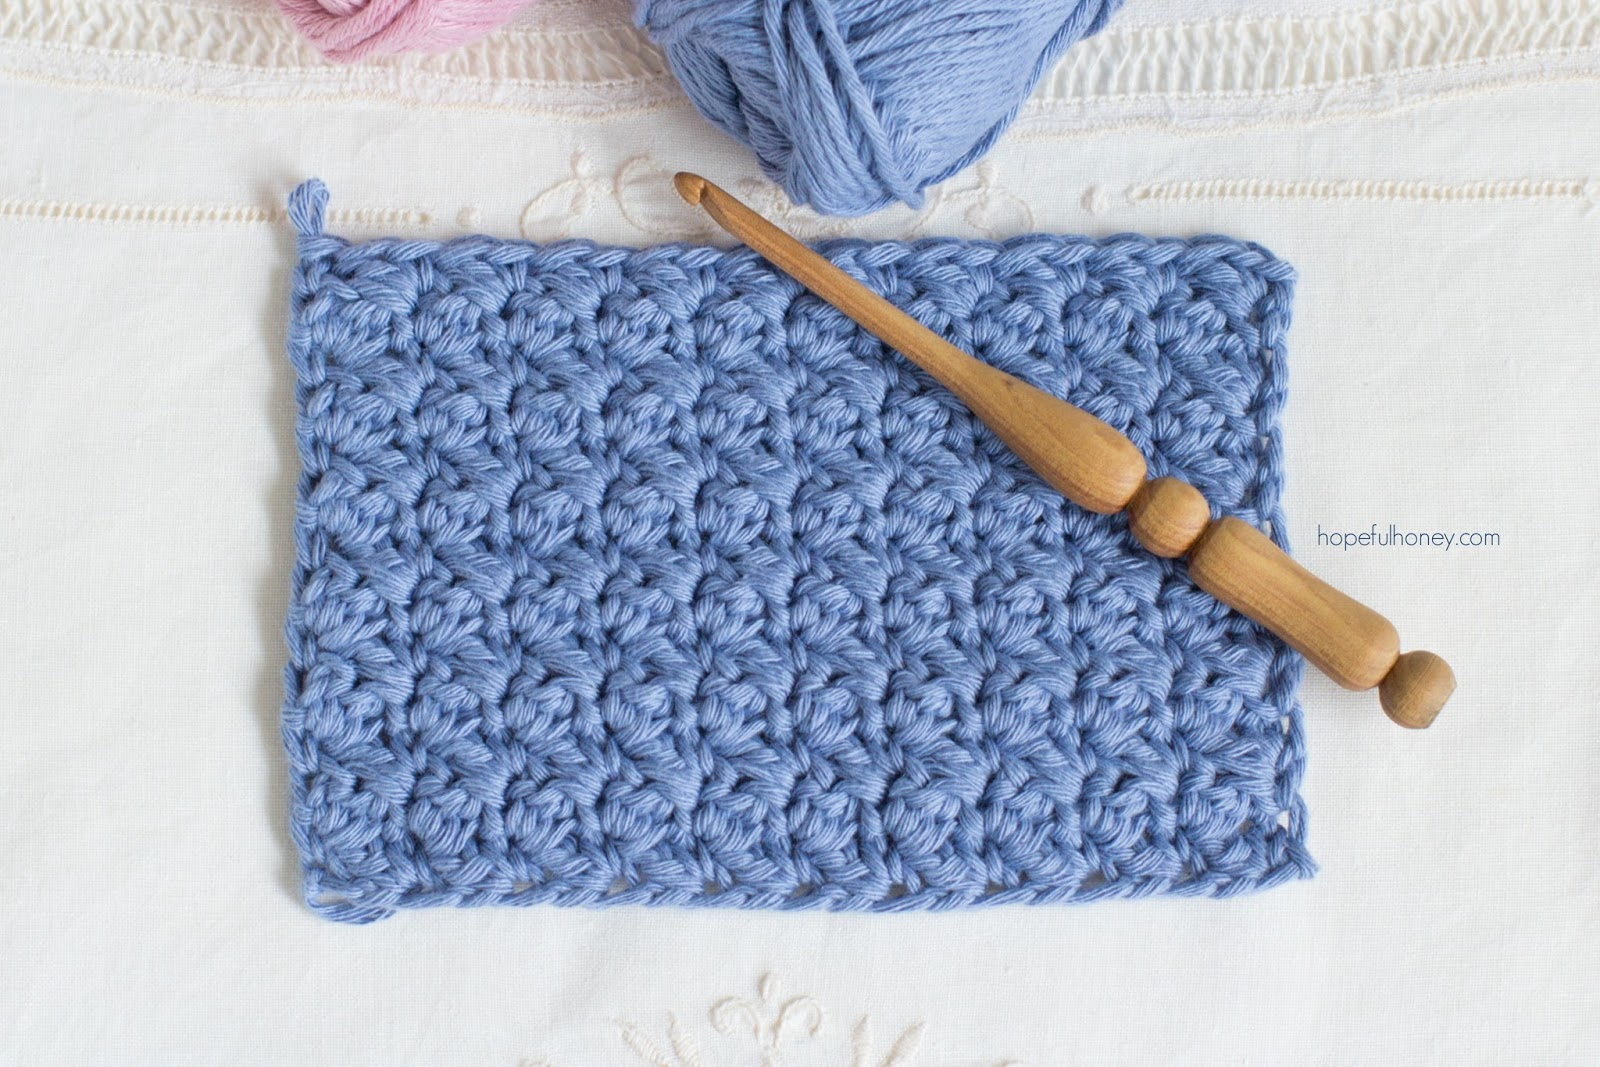 Crochet Stitches Tutorial : ... , Crochet, Create: How To: Crochet The Suzette Stitch - Easy Tutorial